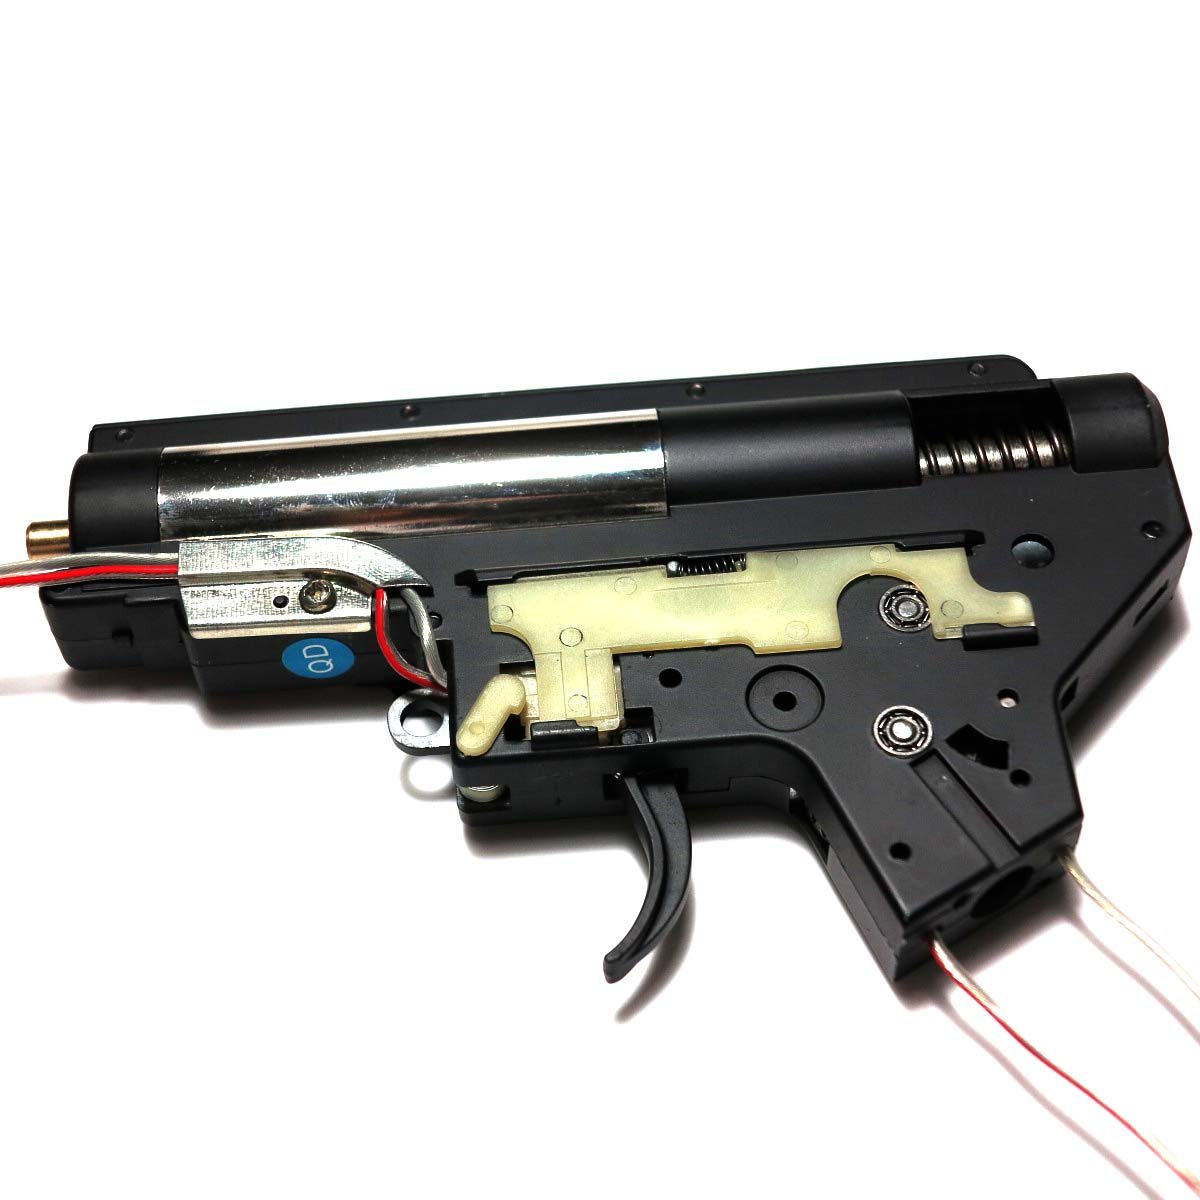 AEG Airsoft Wargame Shooting Gear E&C 8mm Complete QD Transform M4 Gearbox Version 2 Front Line by Airsoft Storm